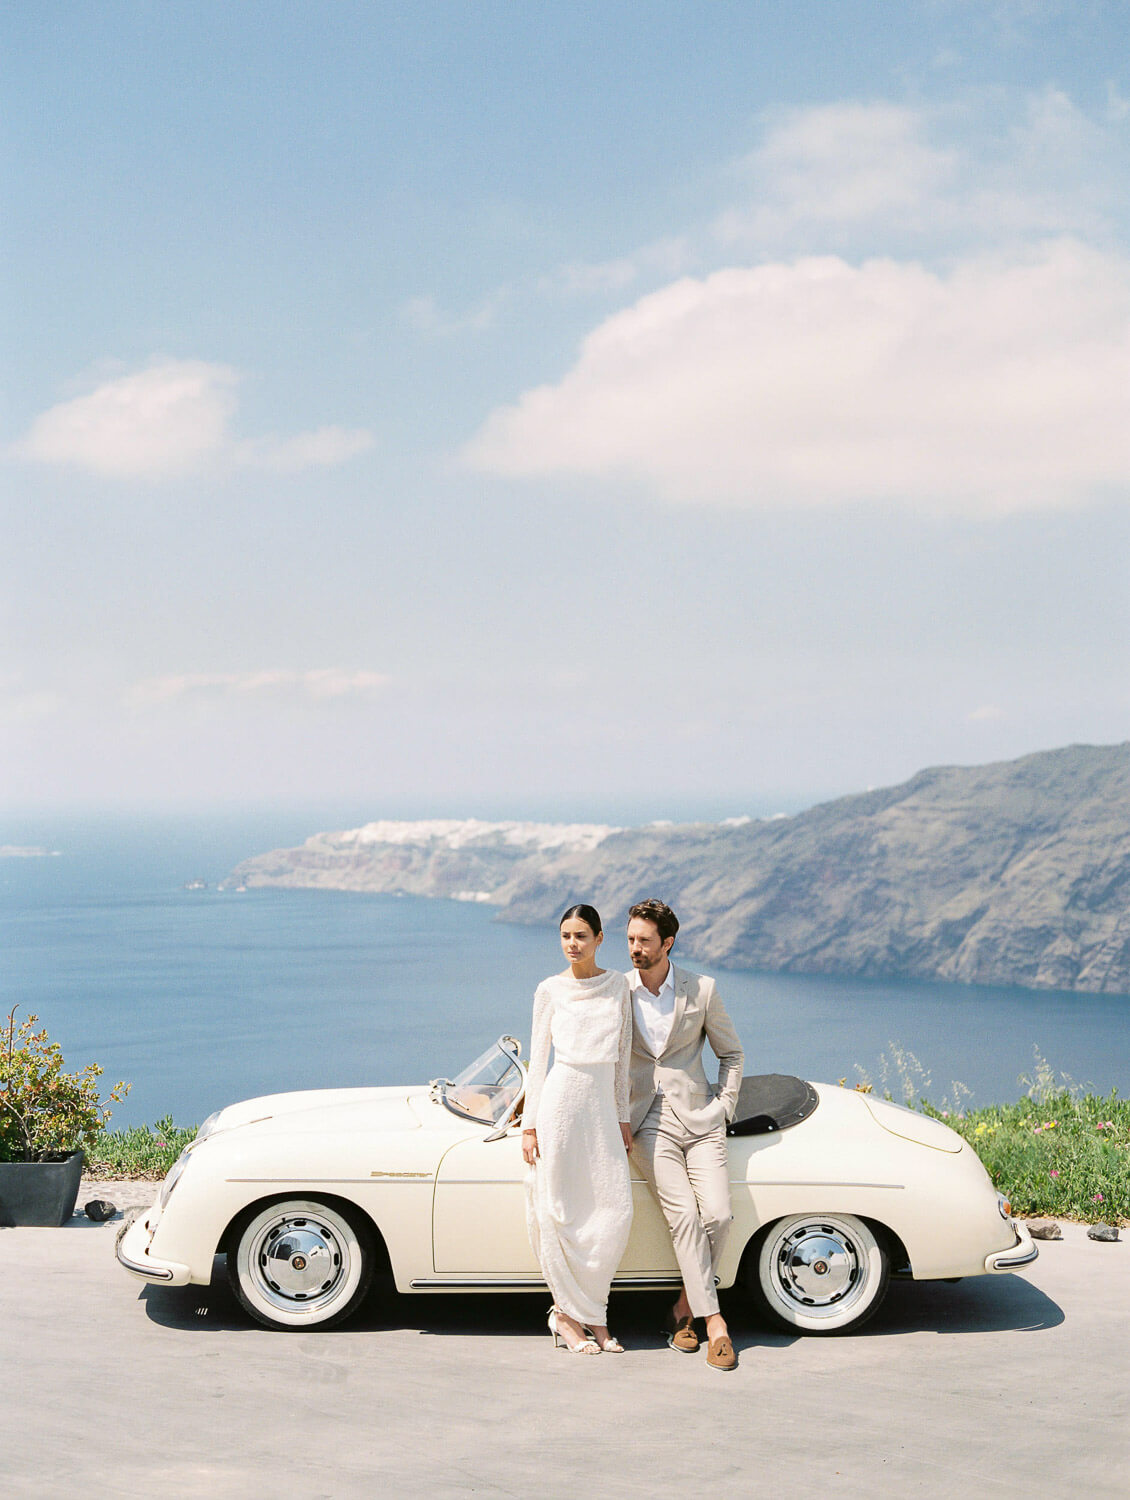 porche-wedding-car-santorini